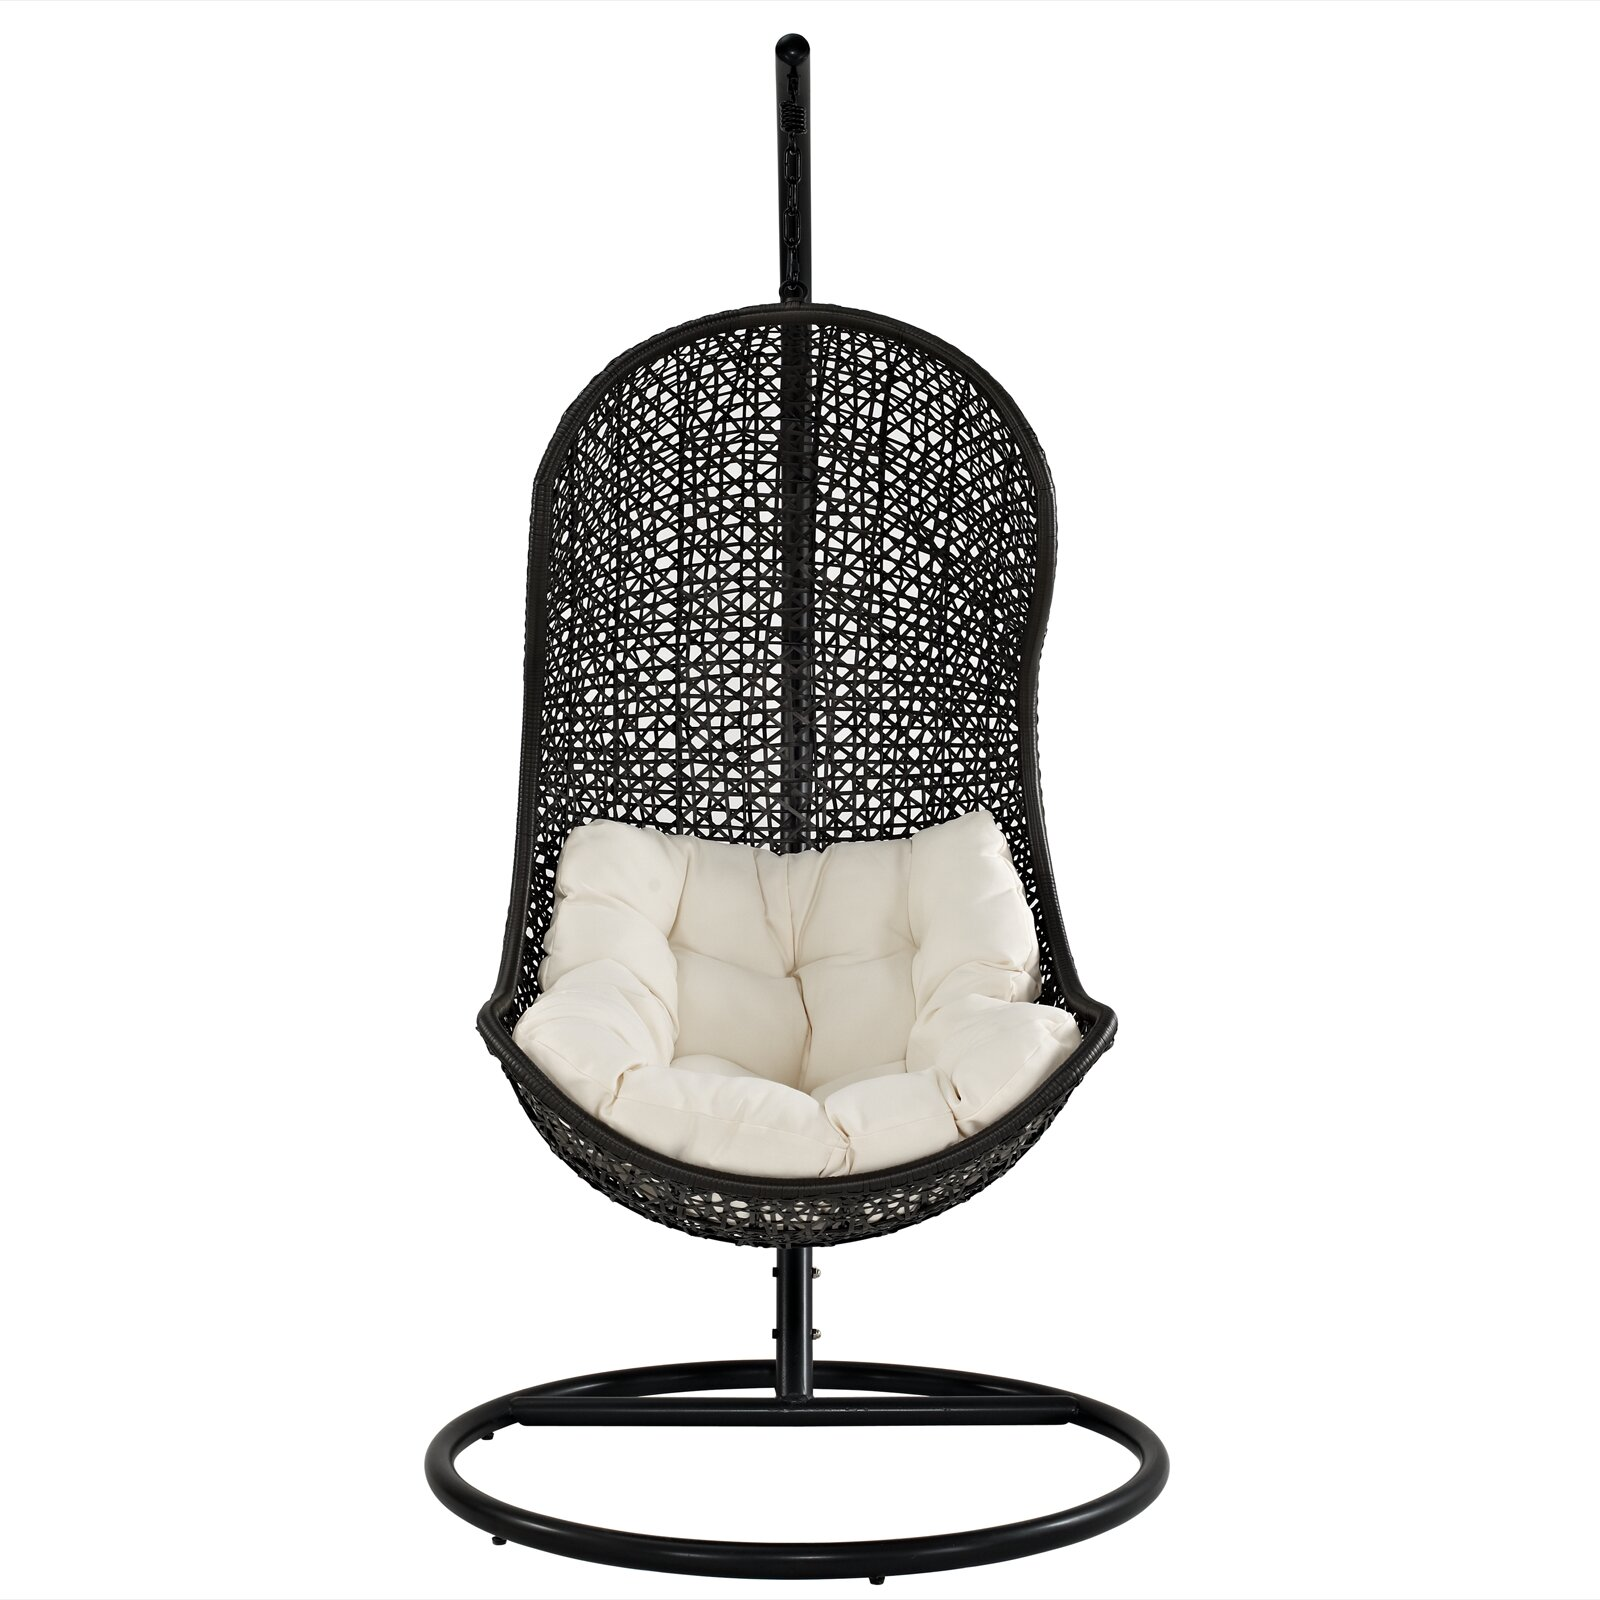 Modway Gamble Swing Chair with Stand & Reviews | Wayfair